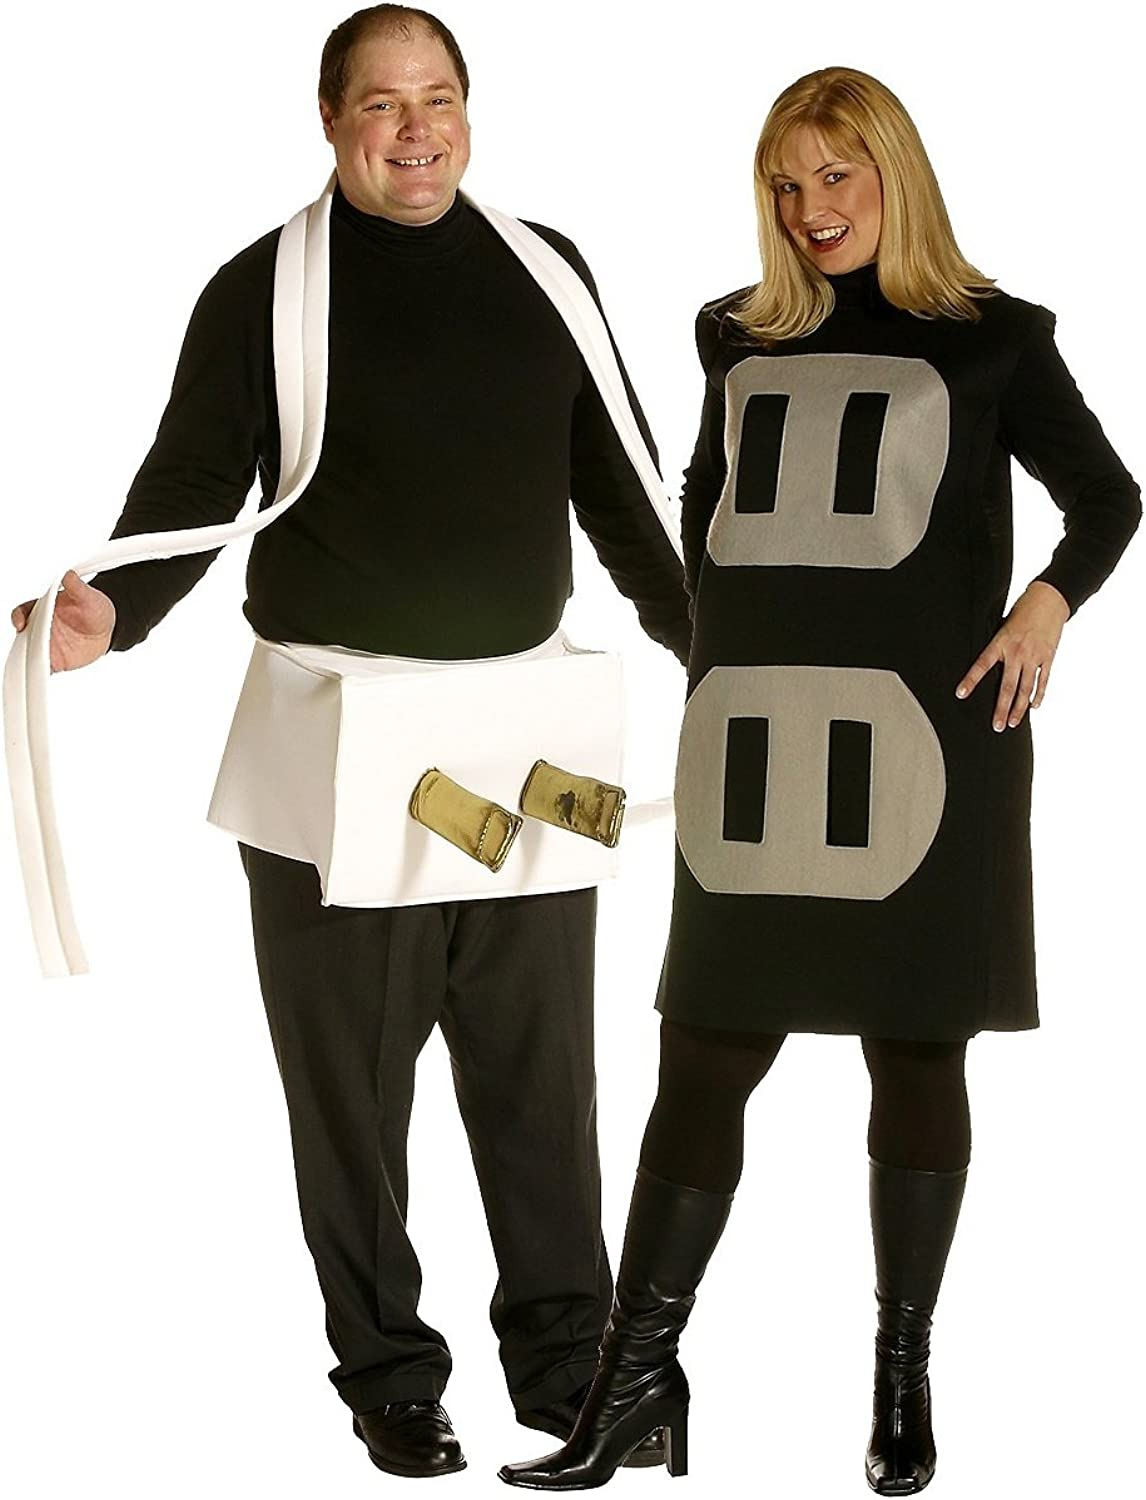 Socket and Switch costume for couples